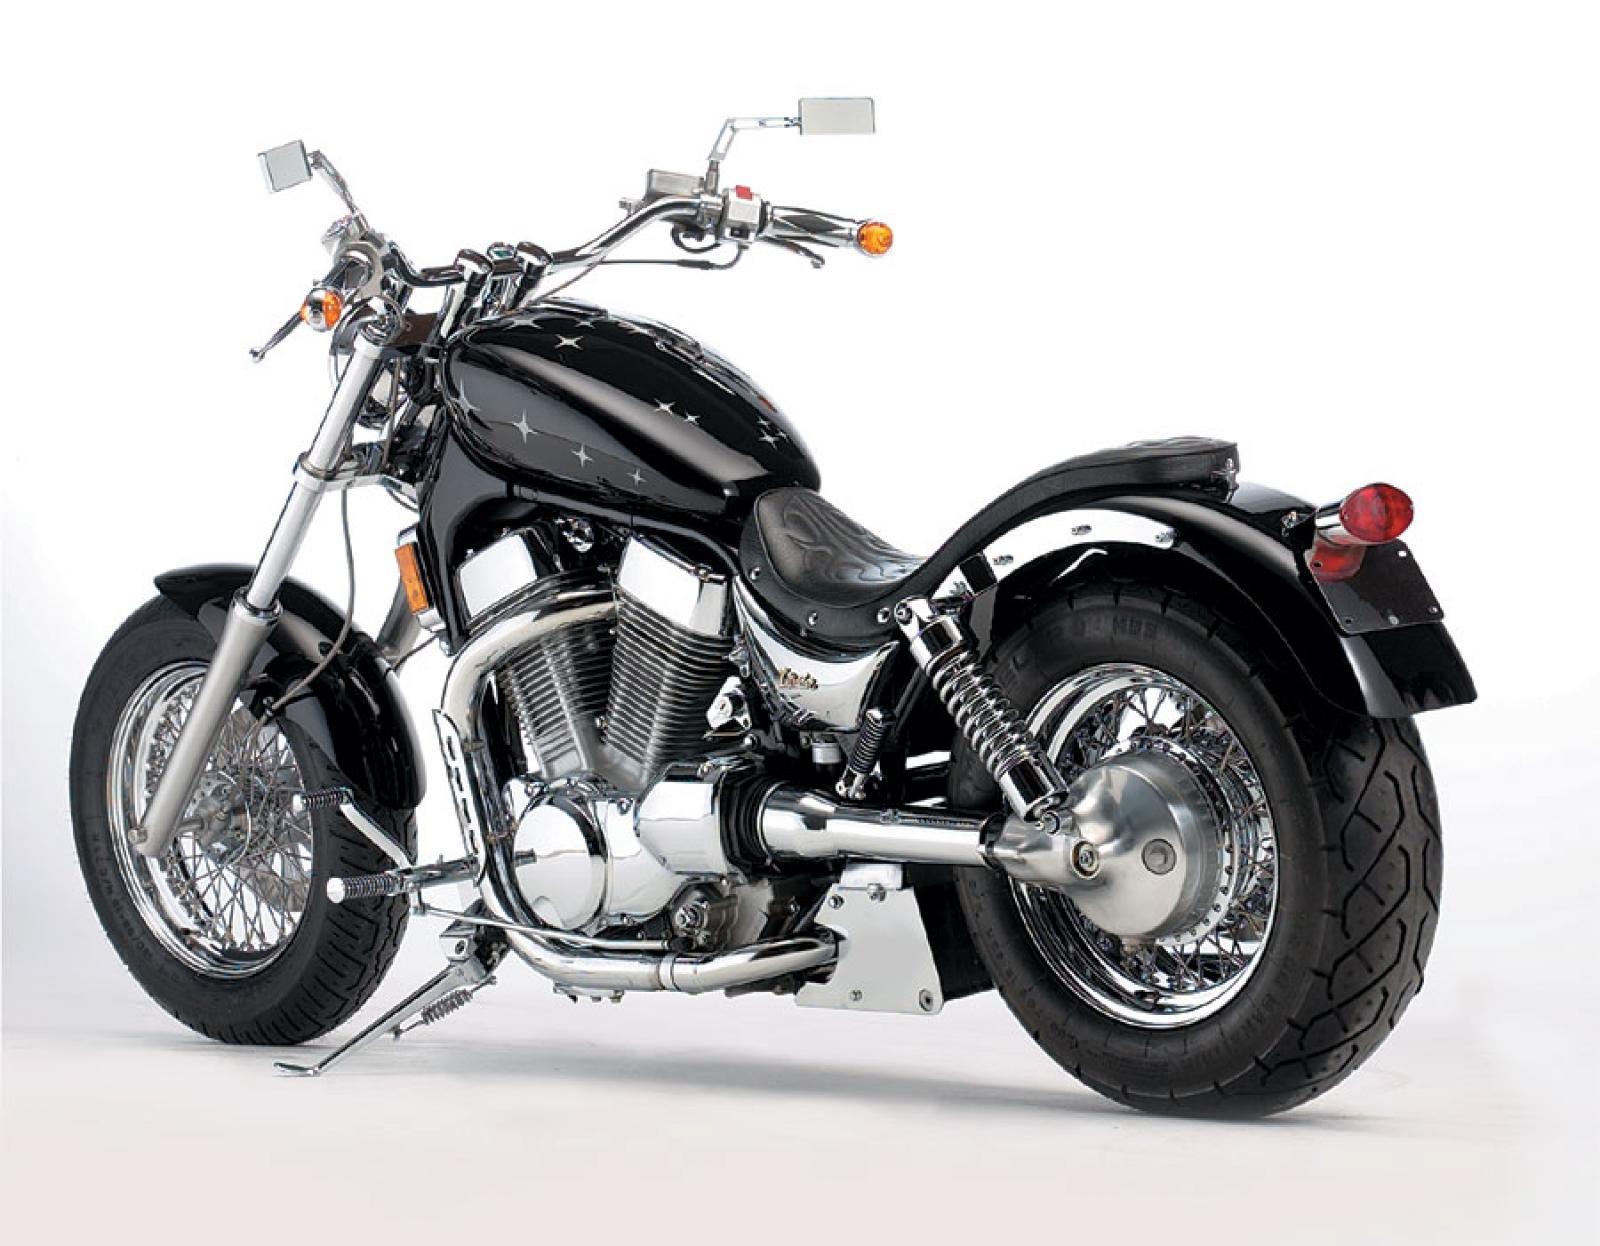 suzuki suzuki vs 1400 intruder moto zombdrive com. Black Bedroom Furniture Sets. Home Design Ideas